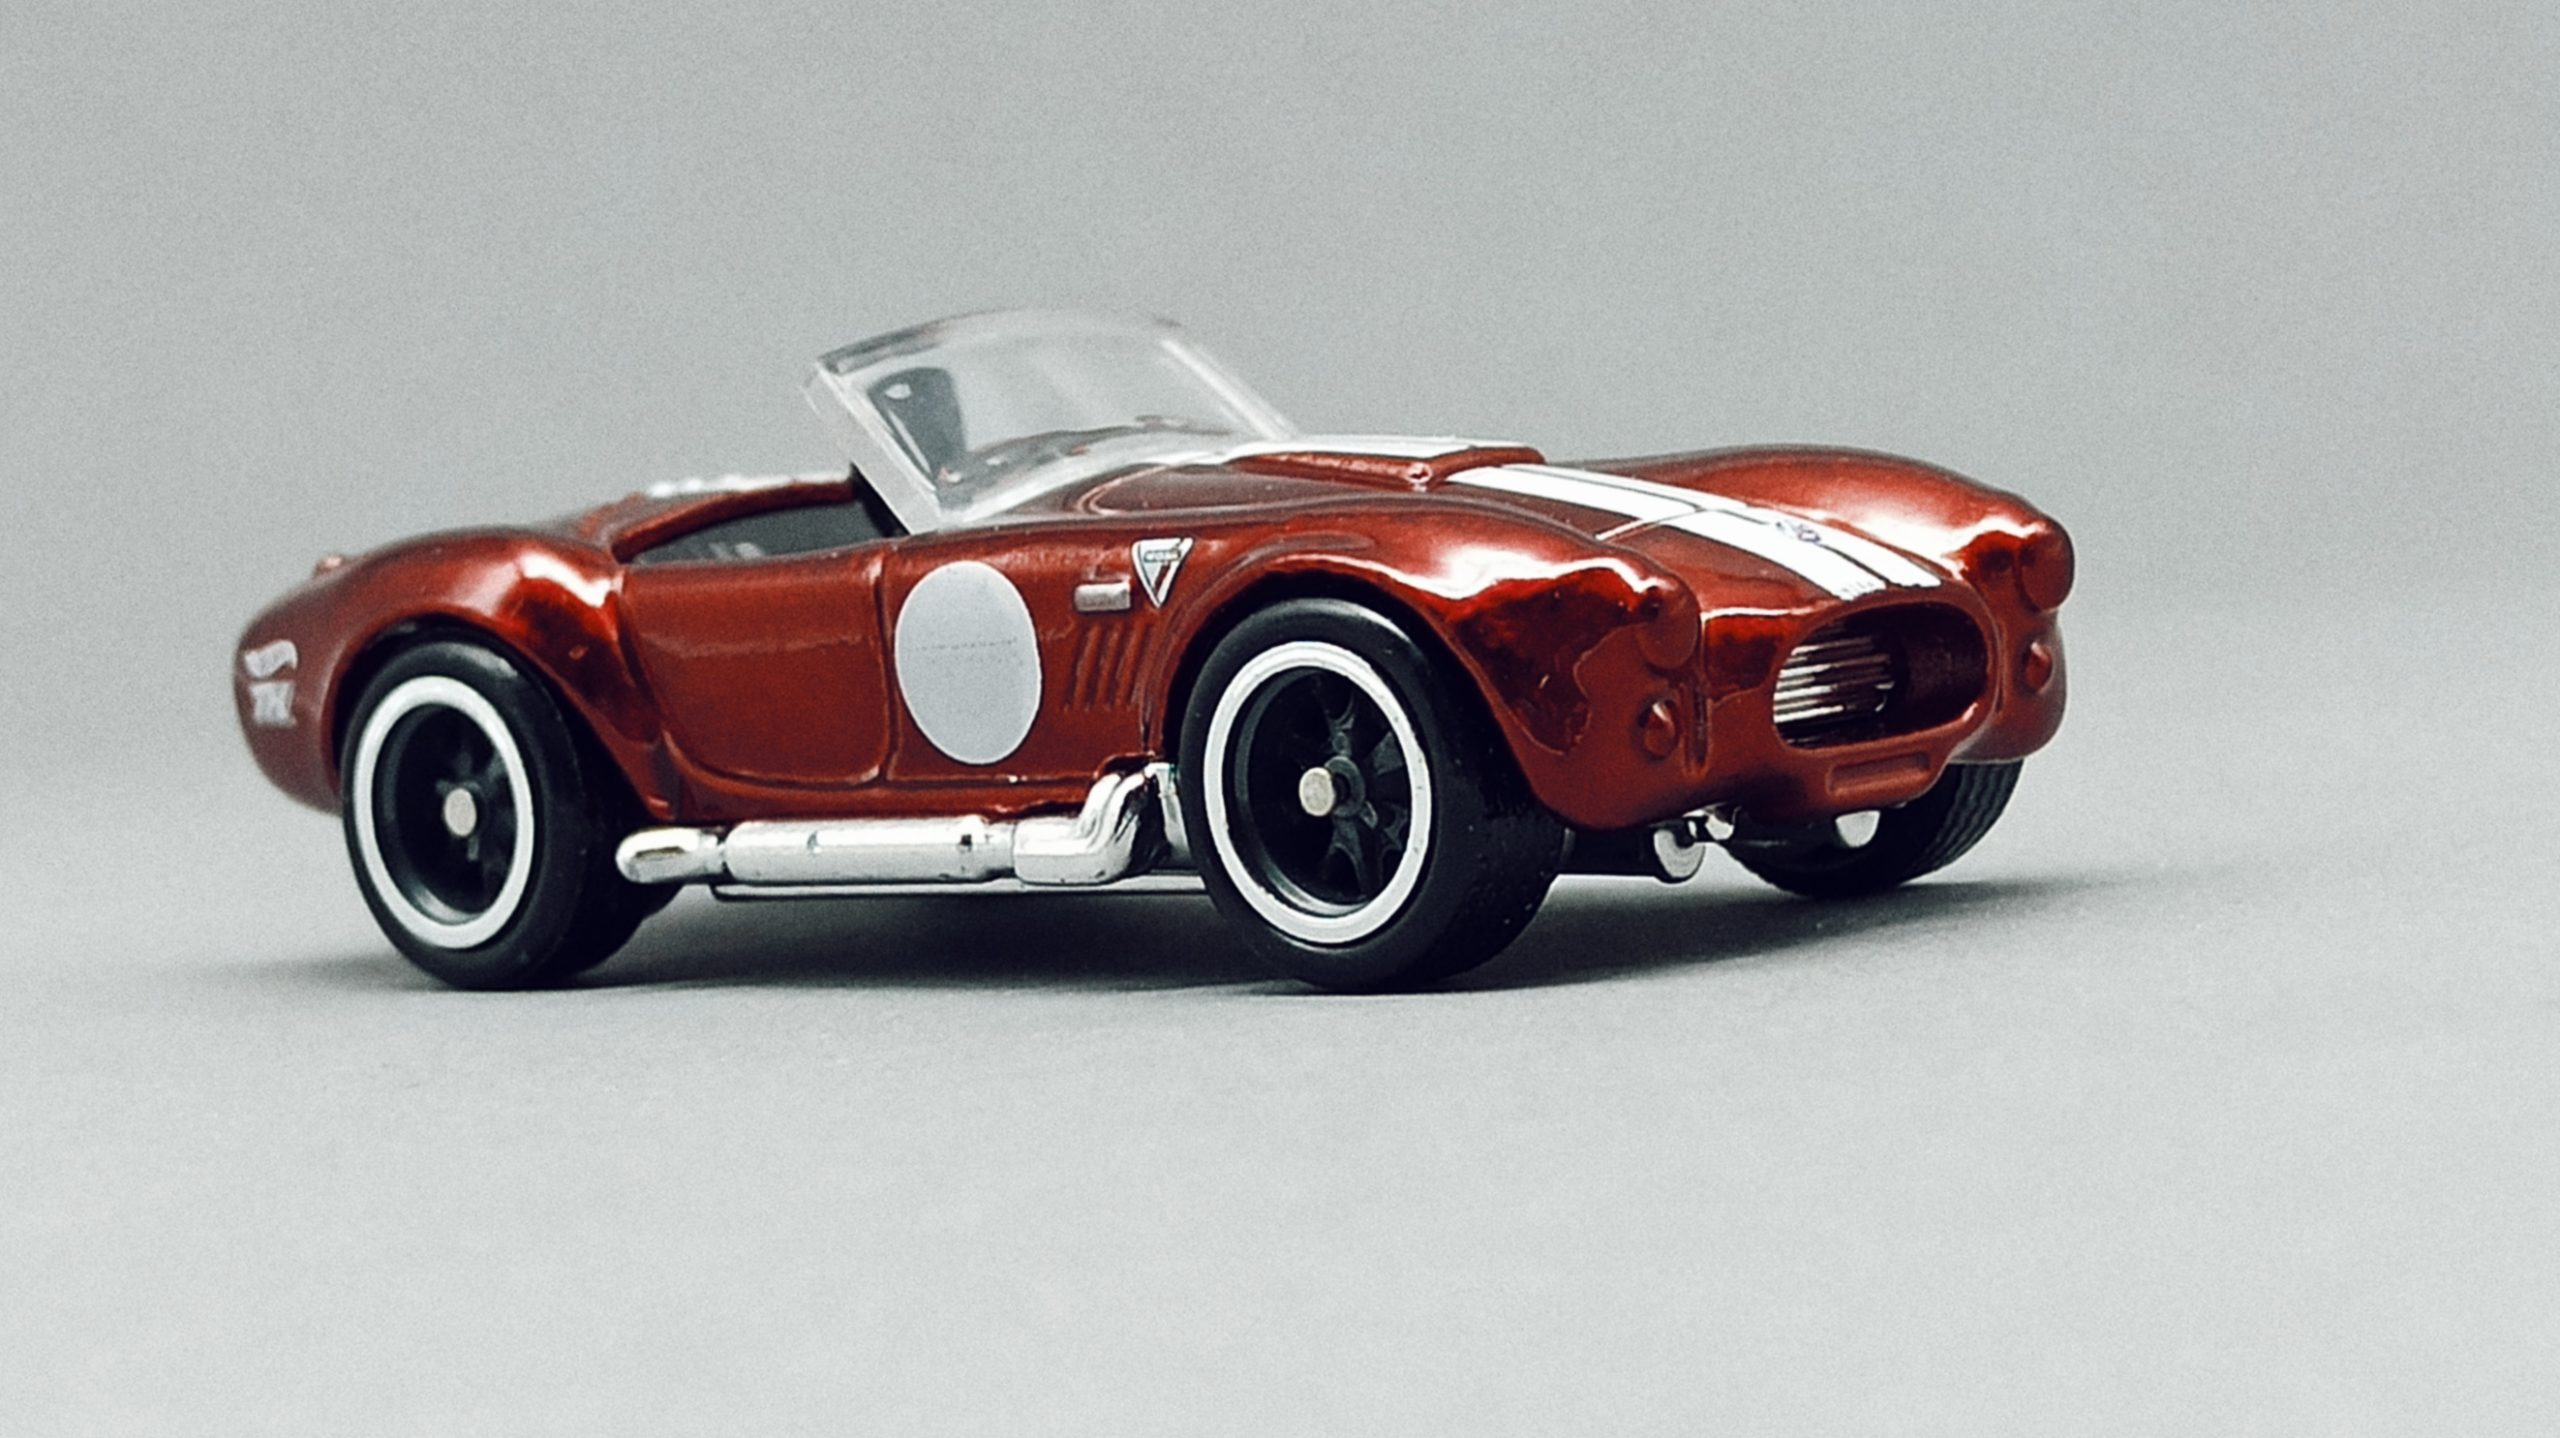 Hot Wheels Classic Cobra (Shelby Cobra 427 S/C) (GTD13) 2021 (250/250) Muscle Mania (10/10) spectraflame red Super Treasure Hunt (STH) side angle